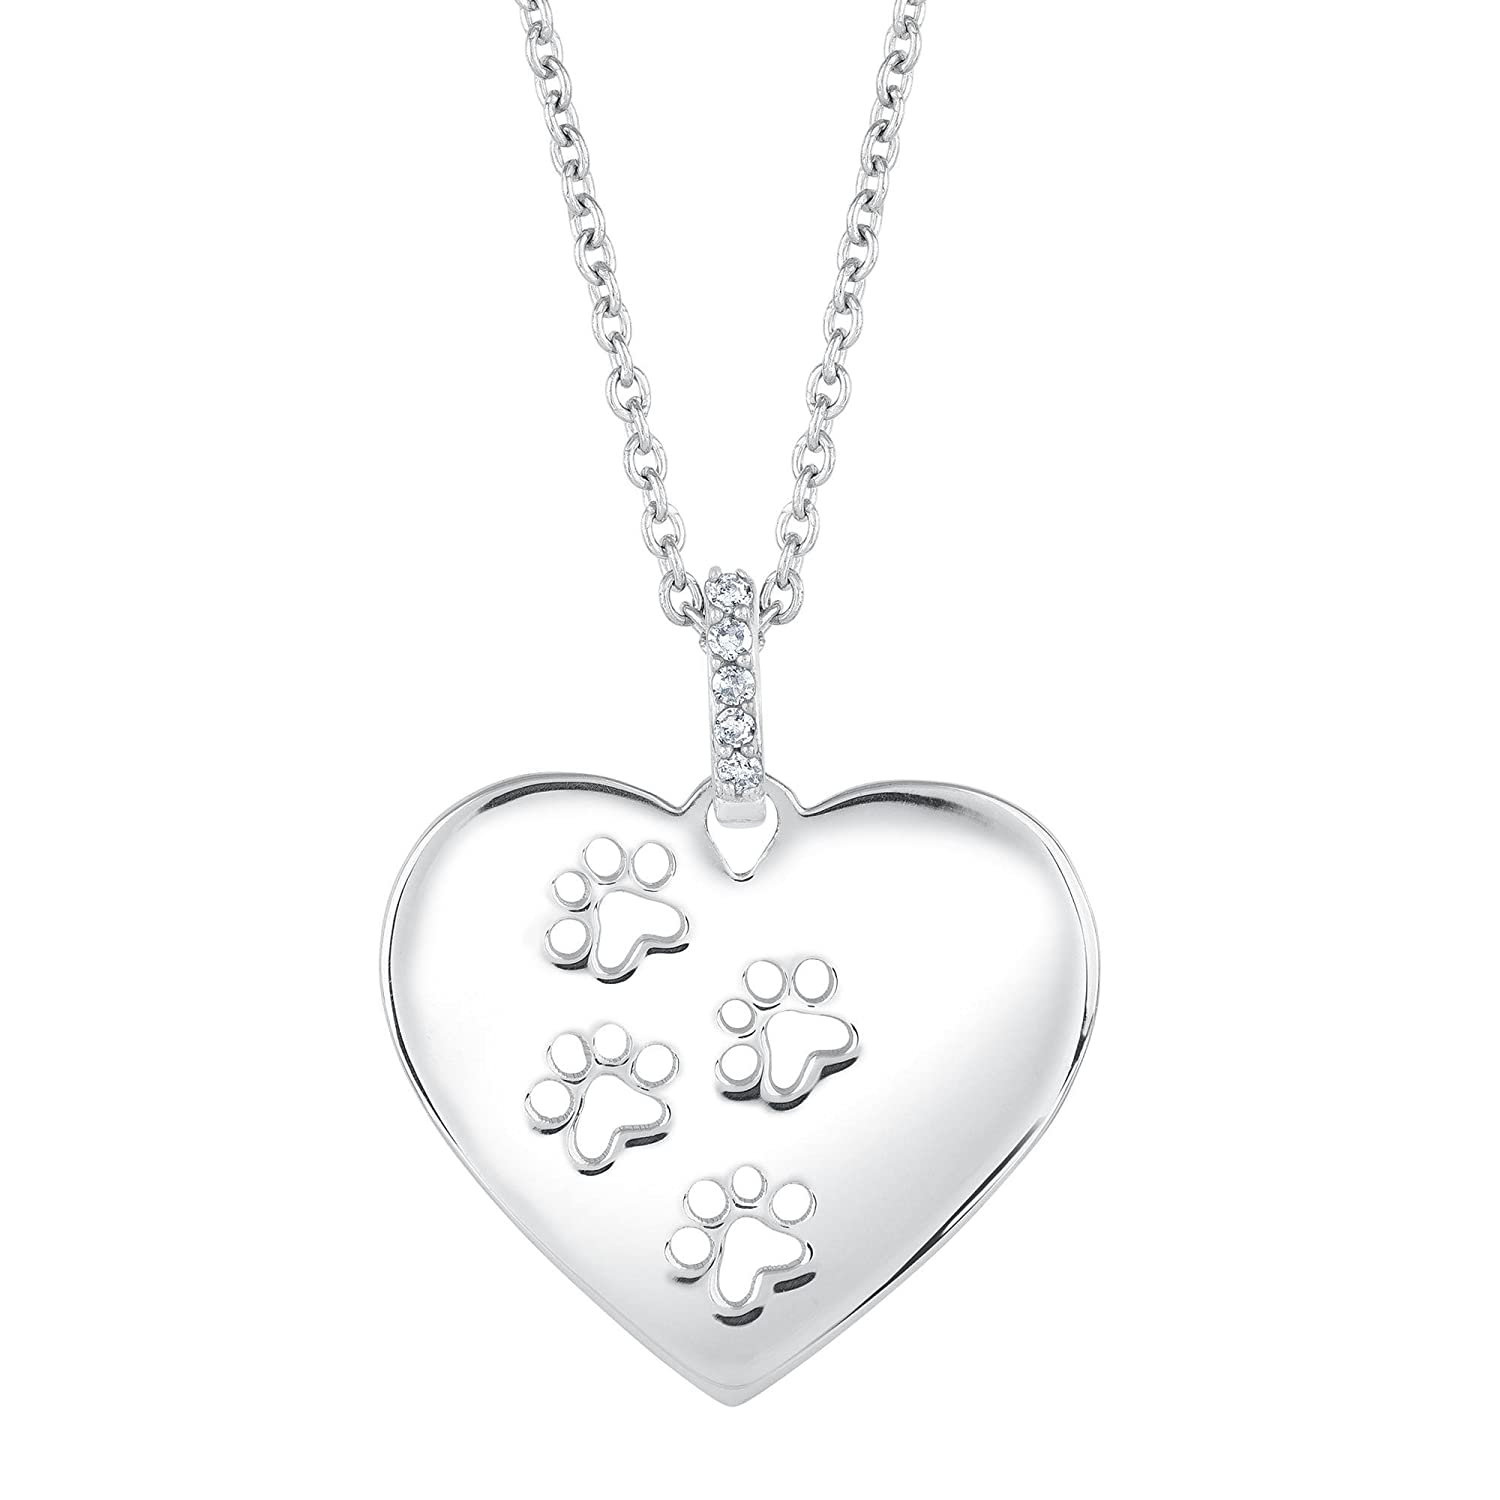 Amazon aspcar tendervoicesr diamond heart paw print amazon aspcar tendervoicesr diamond heart paw print pendant pendant necklaces jewelry buycottarizona Image collections